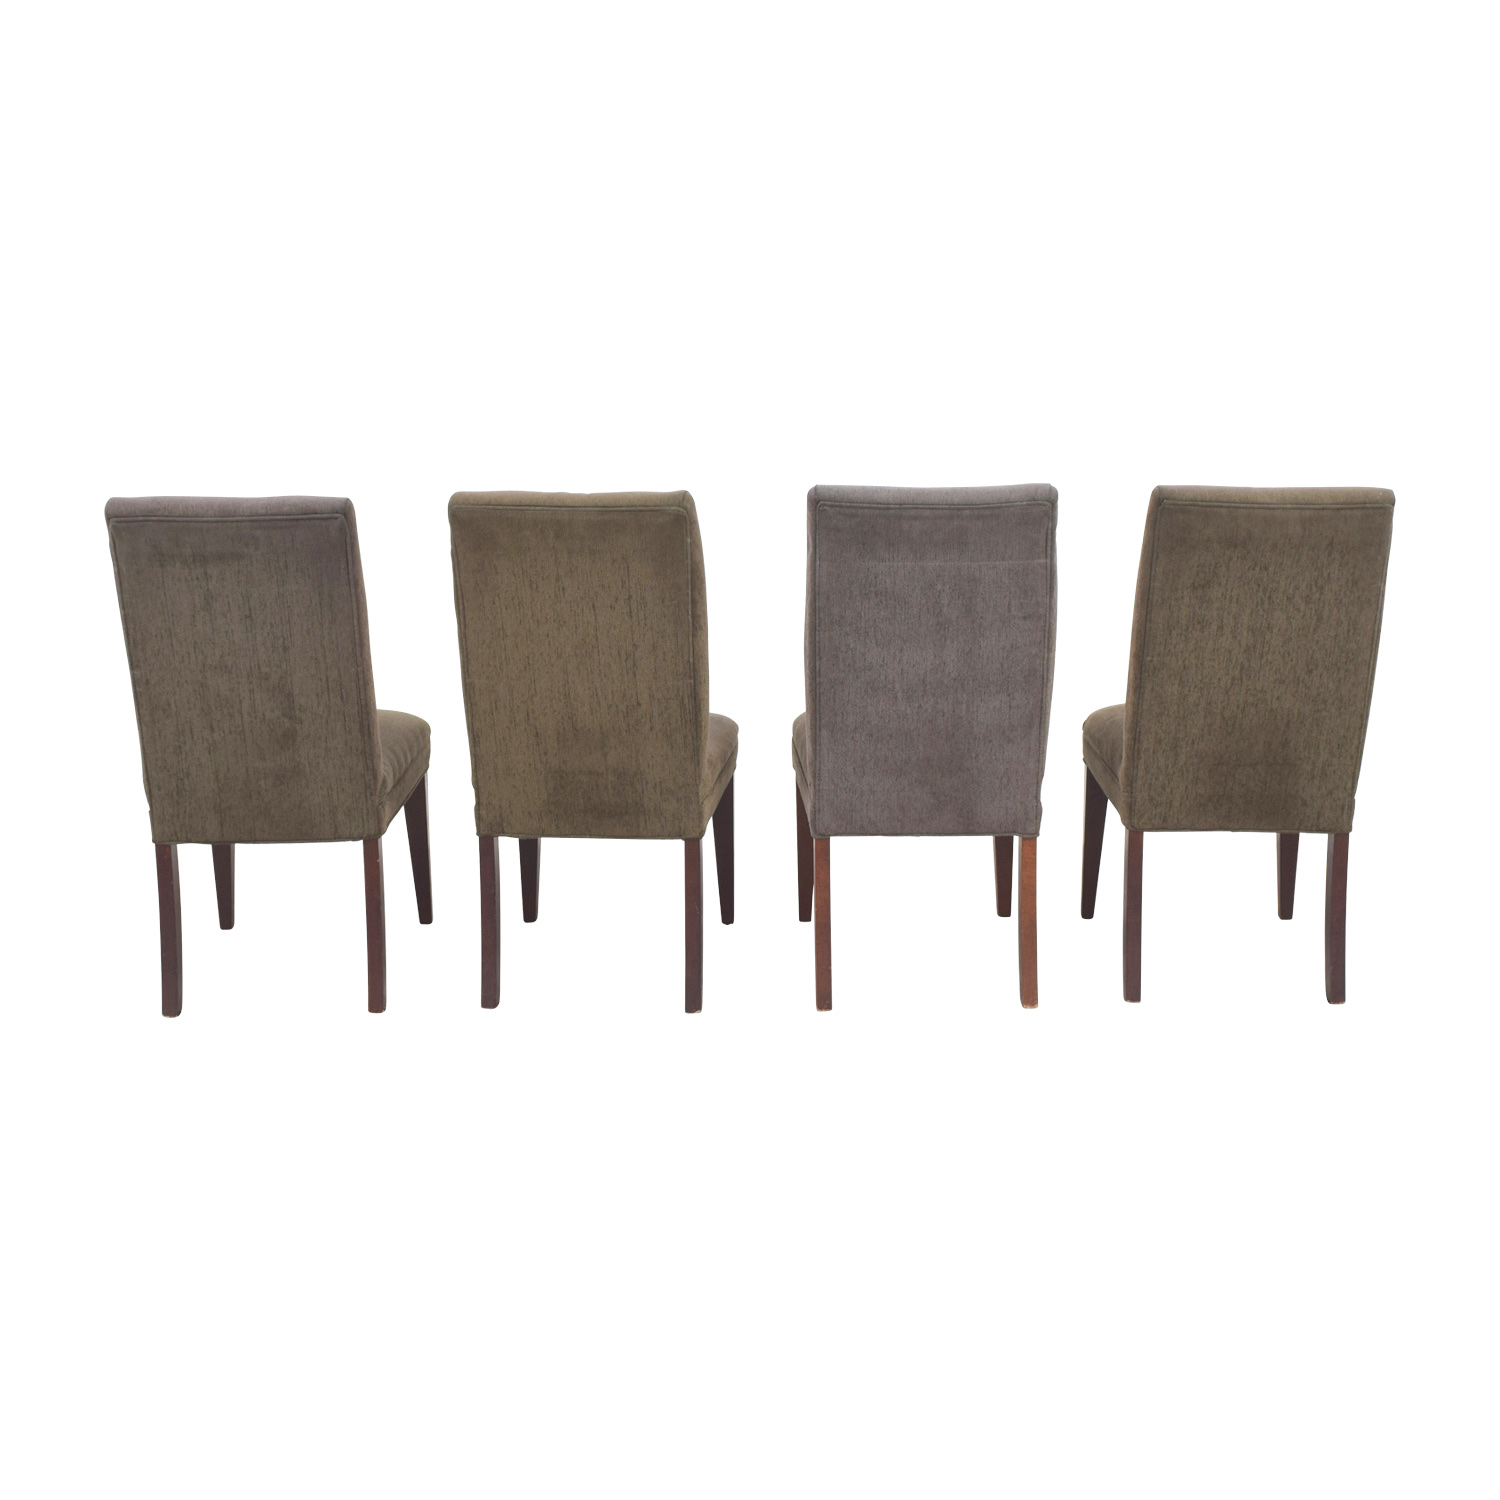 Restoration Hardware Restoration Hardware Olive Green Dining Chairs discount